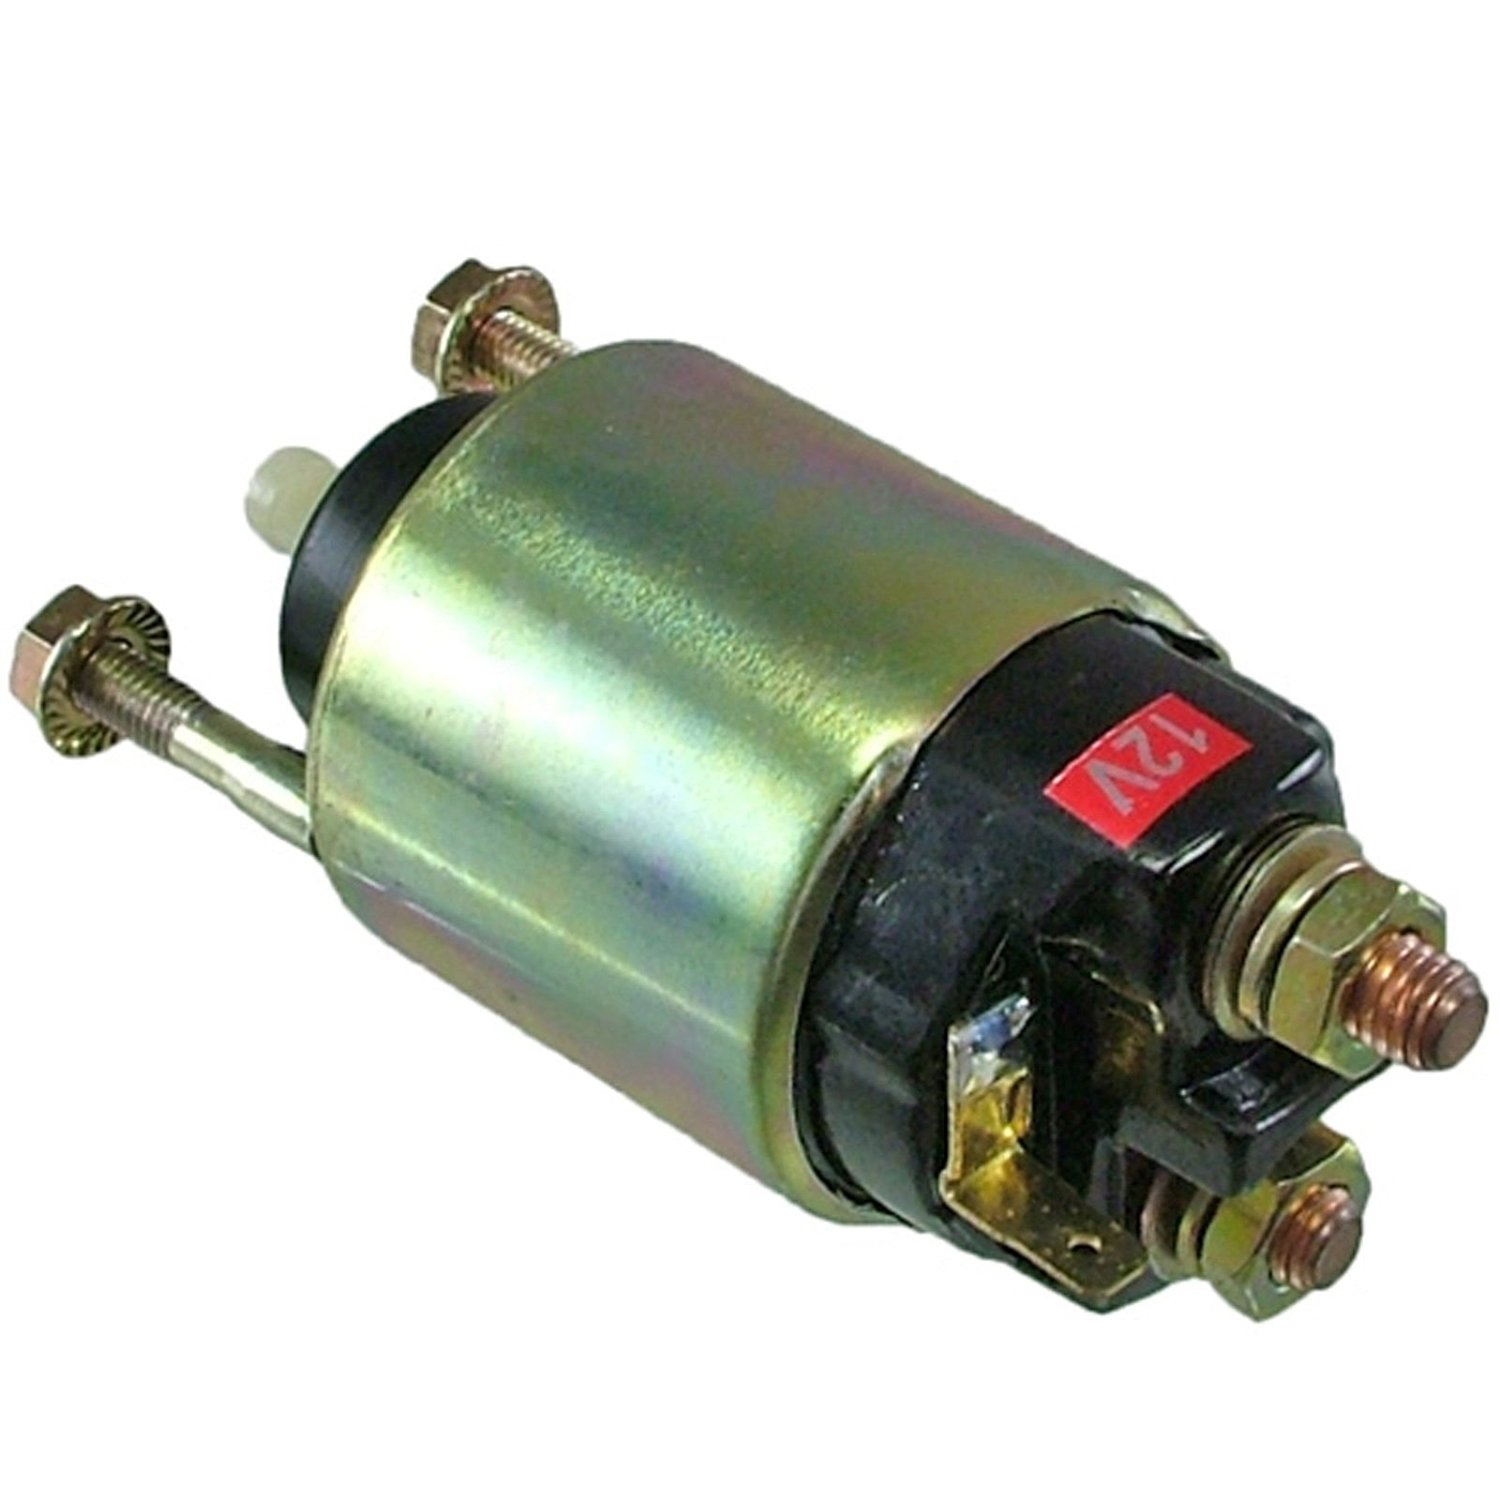 Buy New Starter Motor Solenoid Relay Kawasaki Kohler Mower 18HP 25HP ...